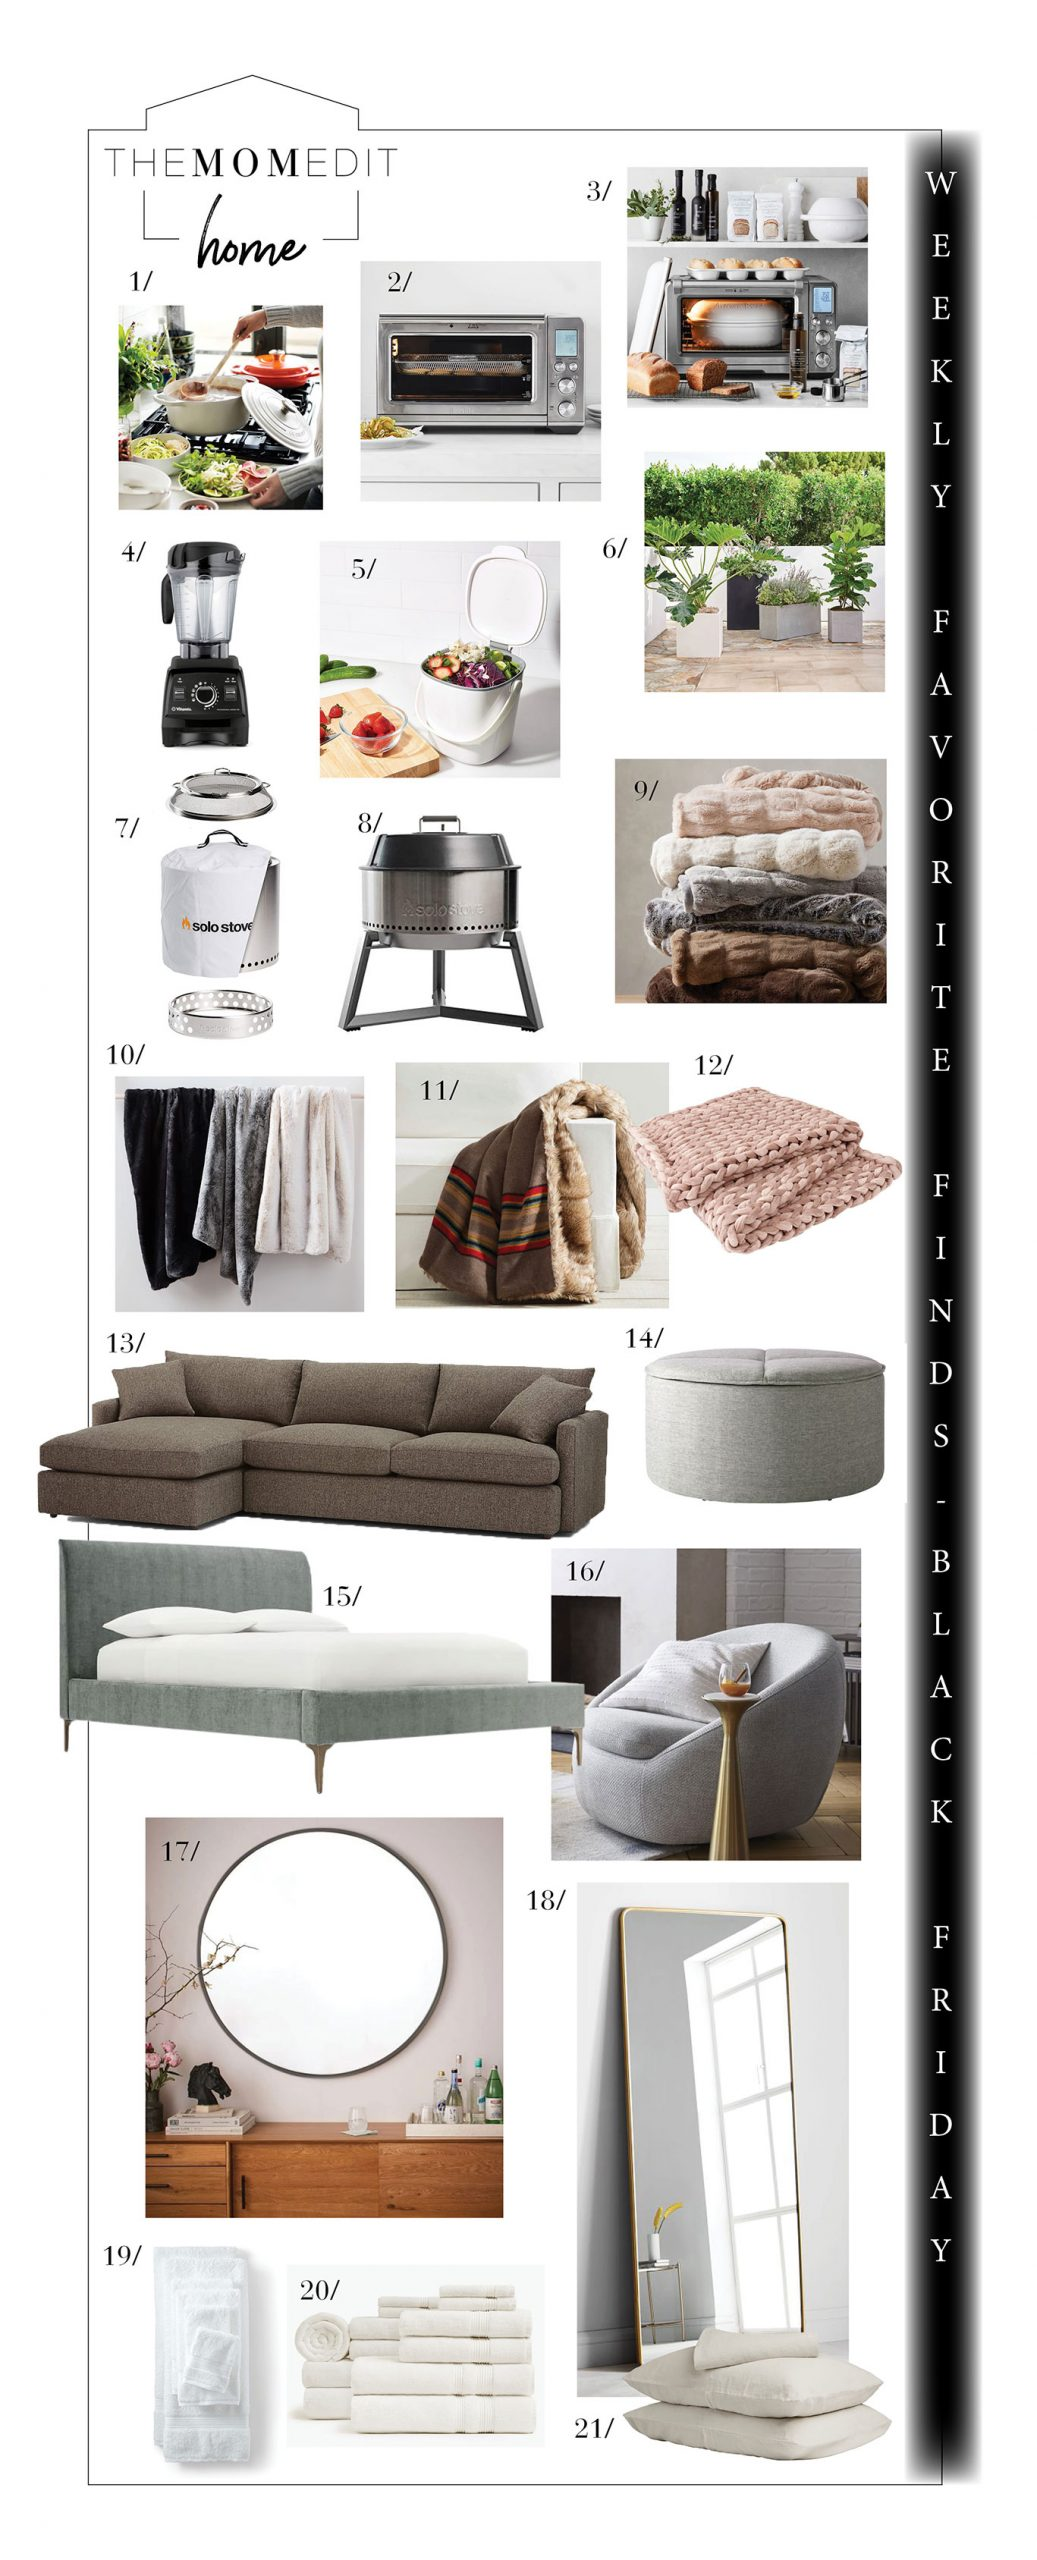 Parachute linens, faux fur throw blankets, Solo Stoves & Smart Toasters....Black Friday Sales for home are smokin'. Shop 'em (+ small biz) here.